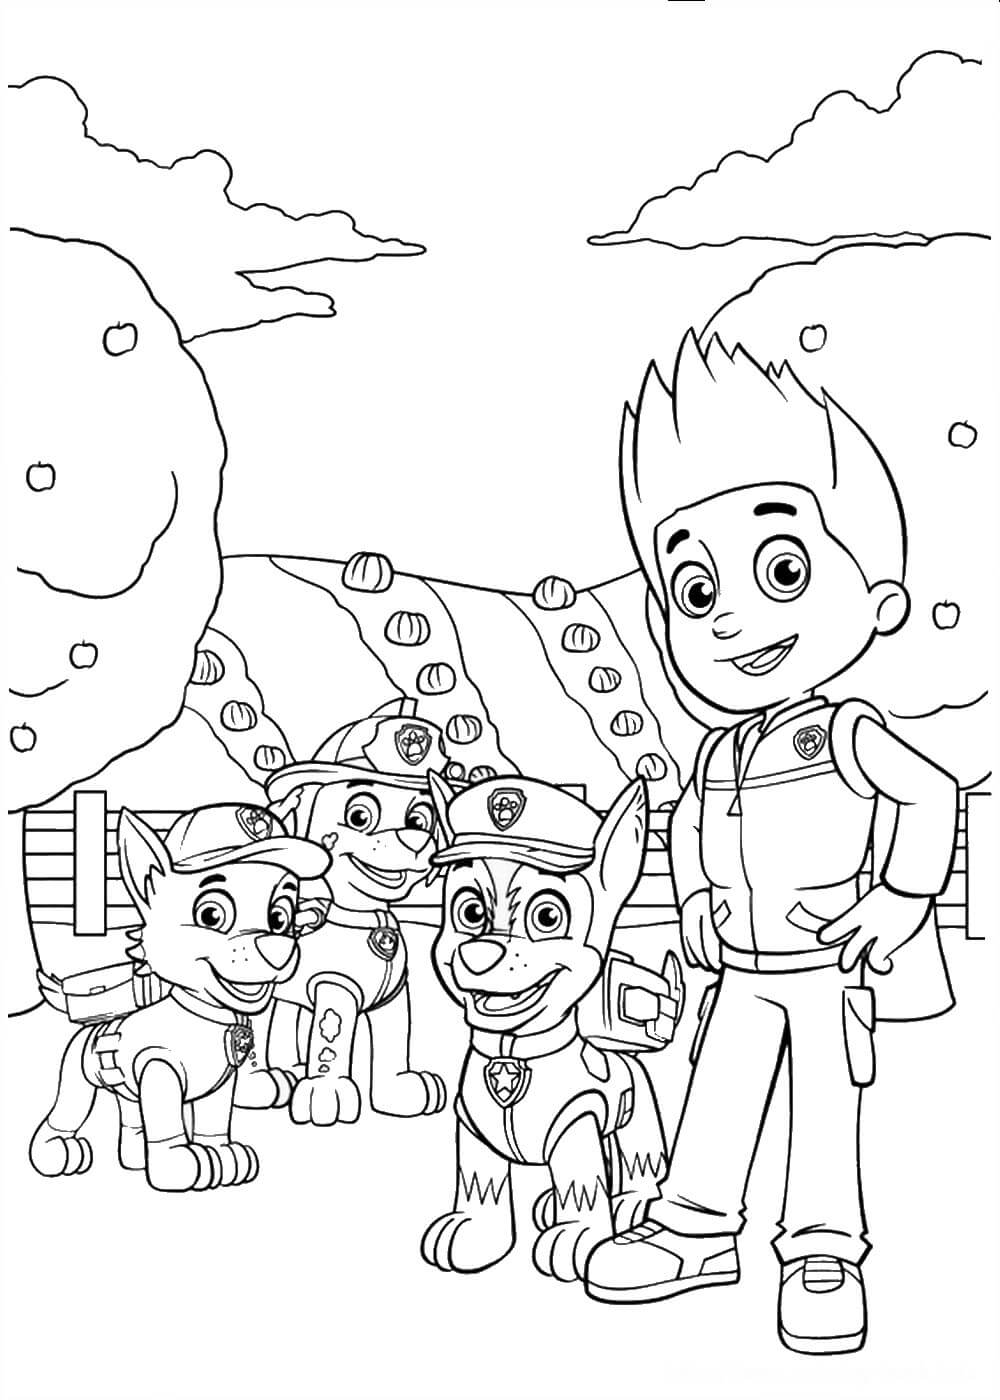 paw patrol pictures to print pawpatrolcoloringpage22 coloring pages for kids patrol pictures print paw to